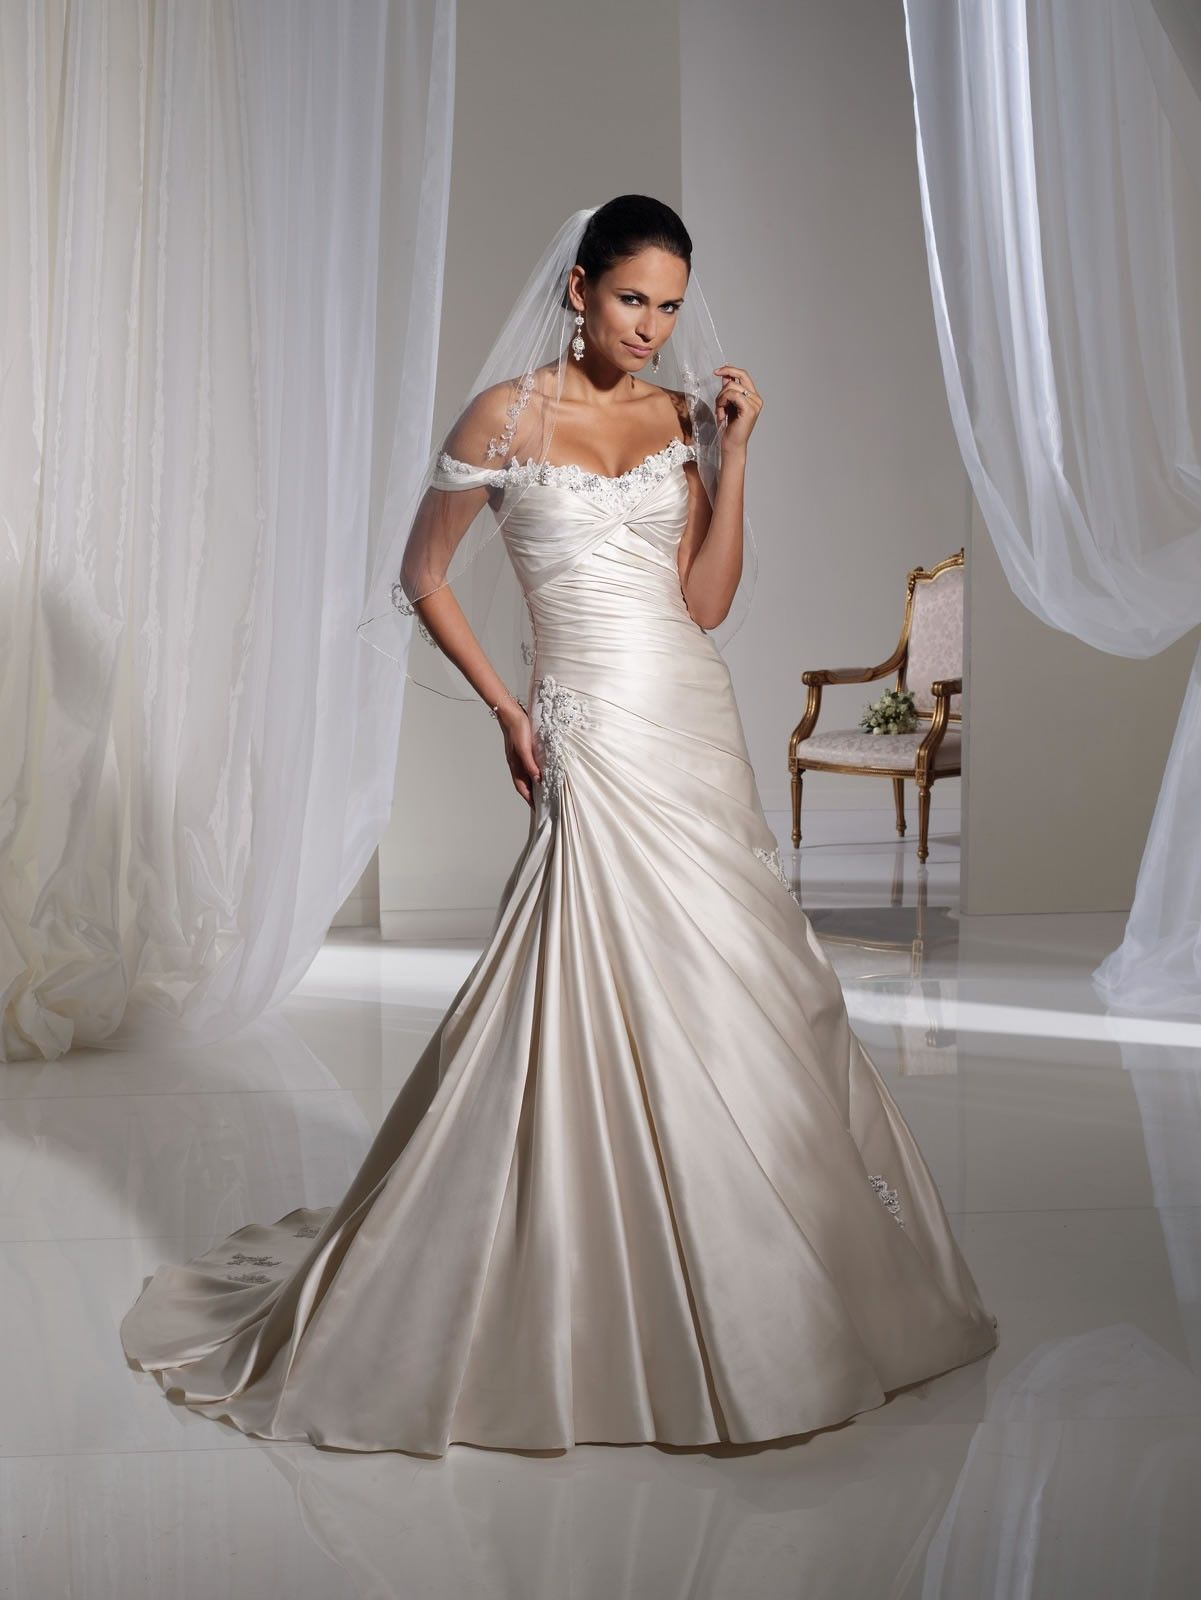 Paris satin gorgeous offtheshoulder neckline aline wedding dress